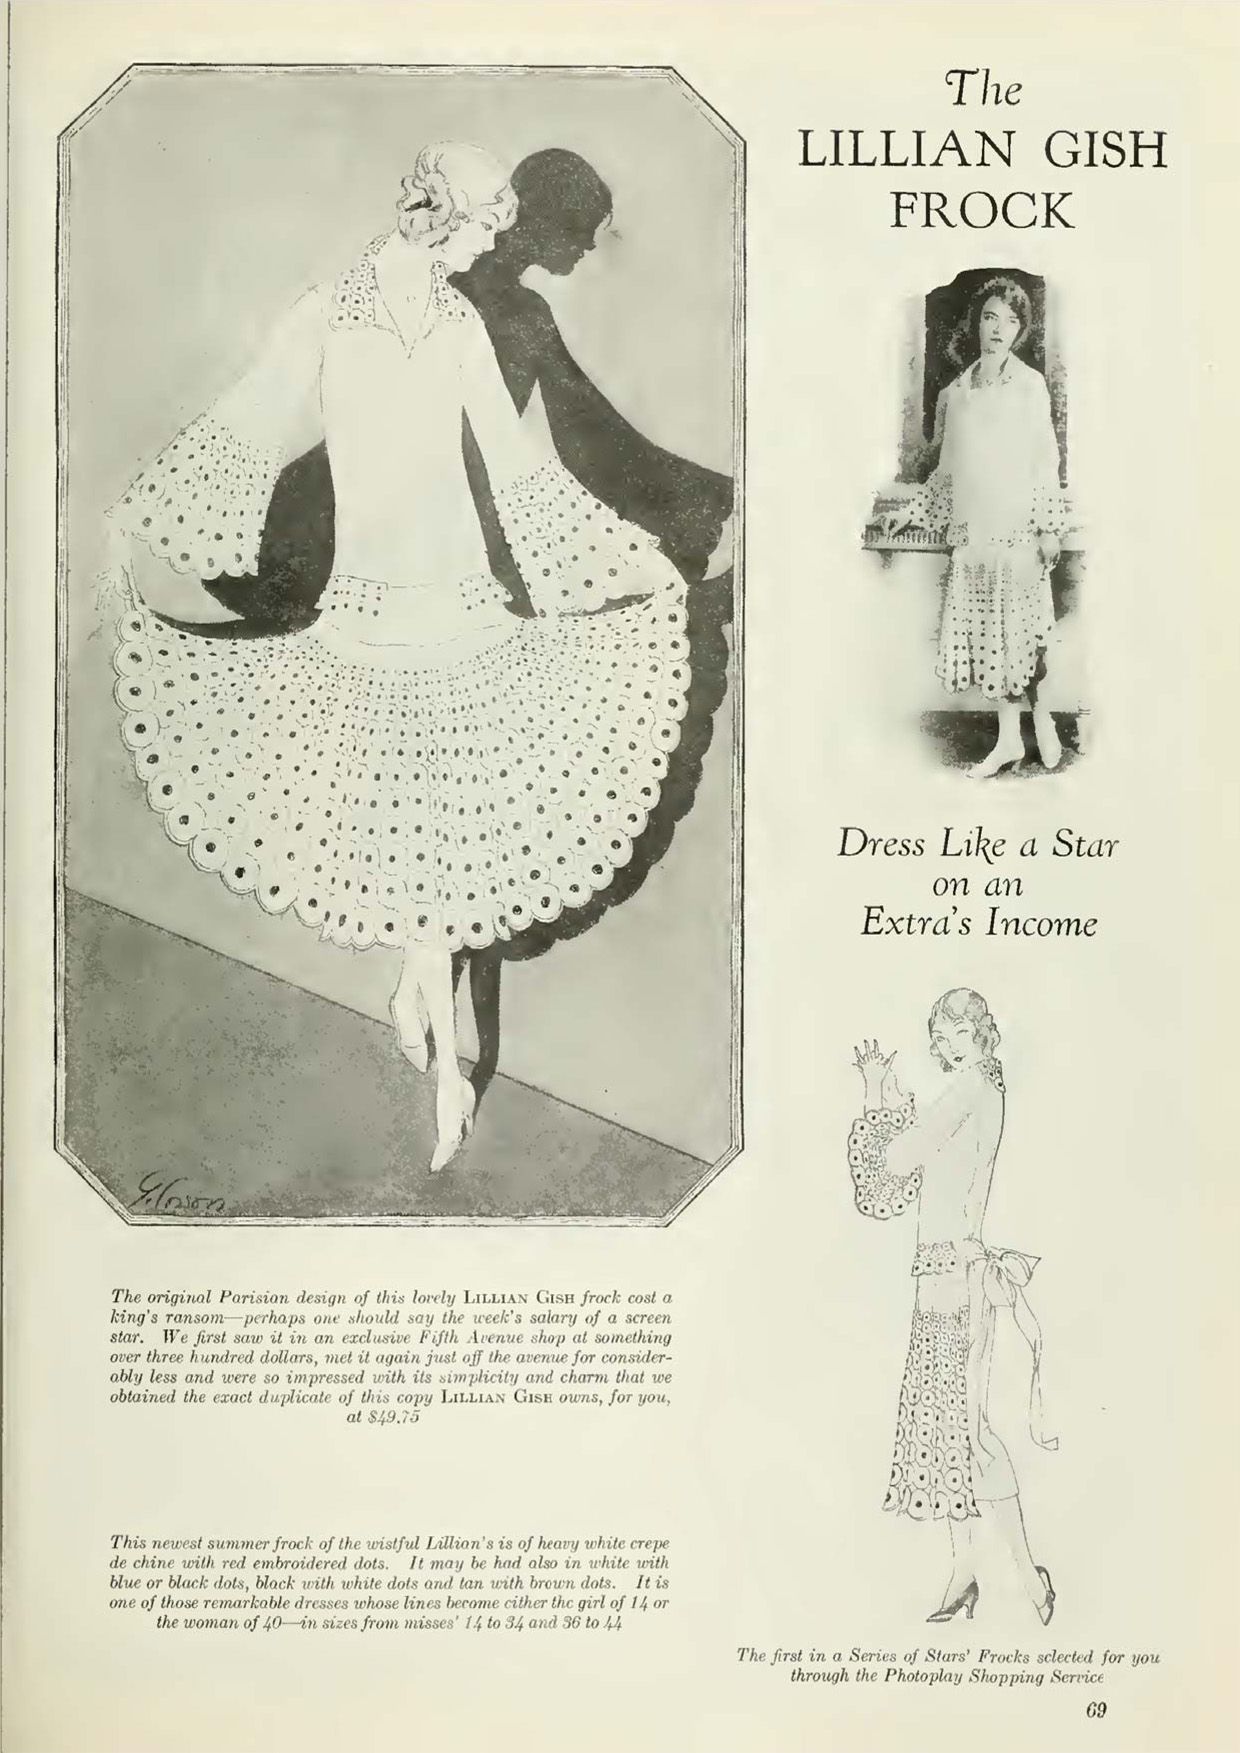 The Lillian Gish Frock – (Photoplay July 1925)